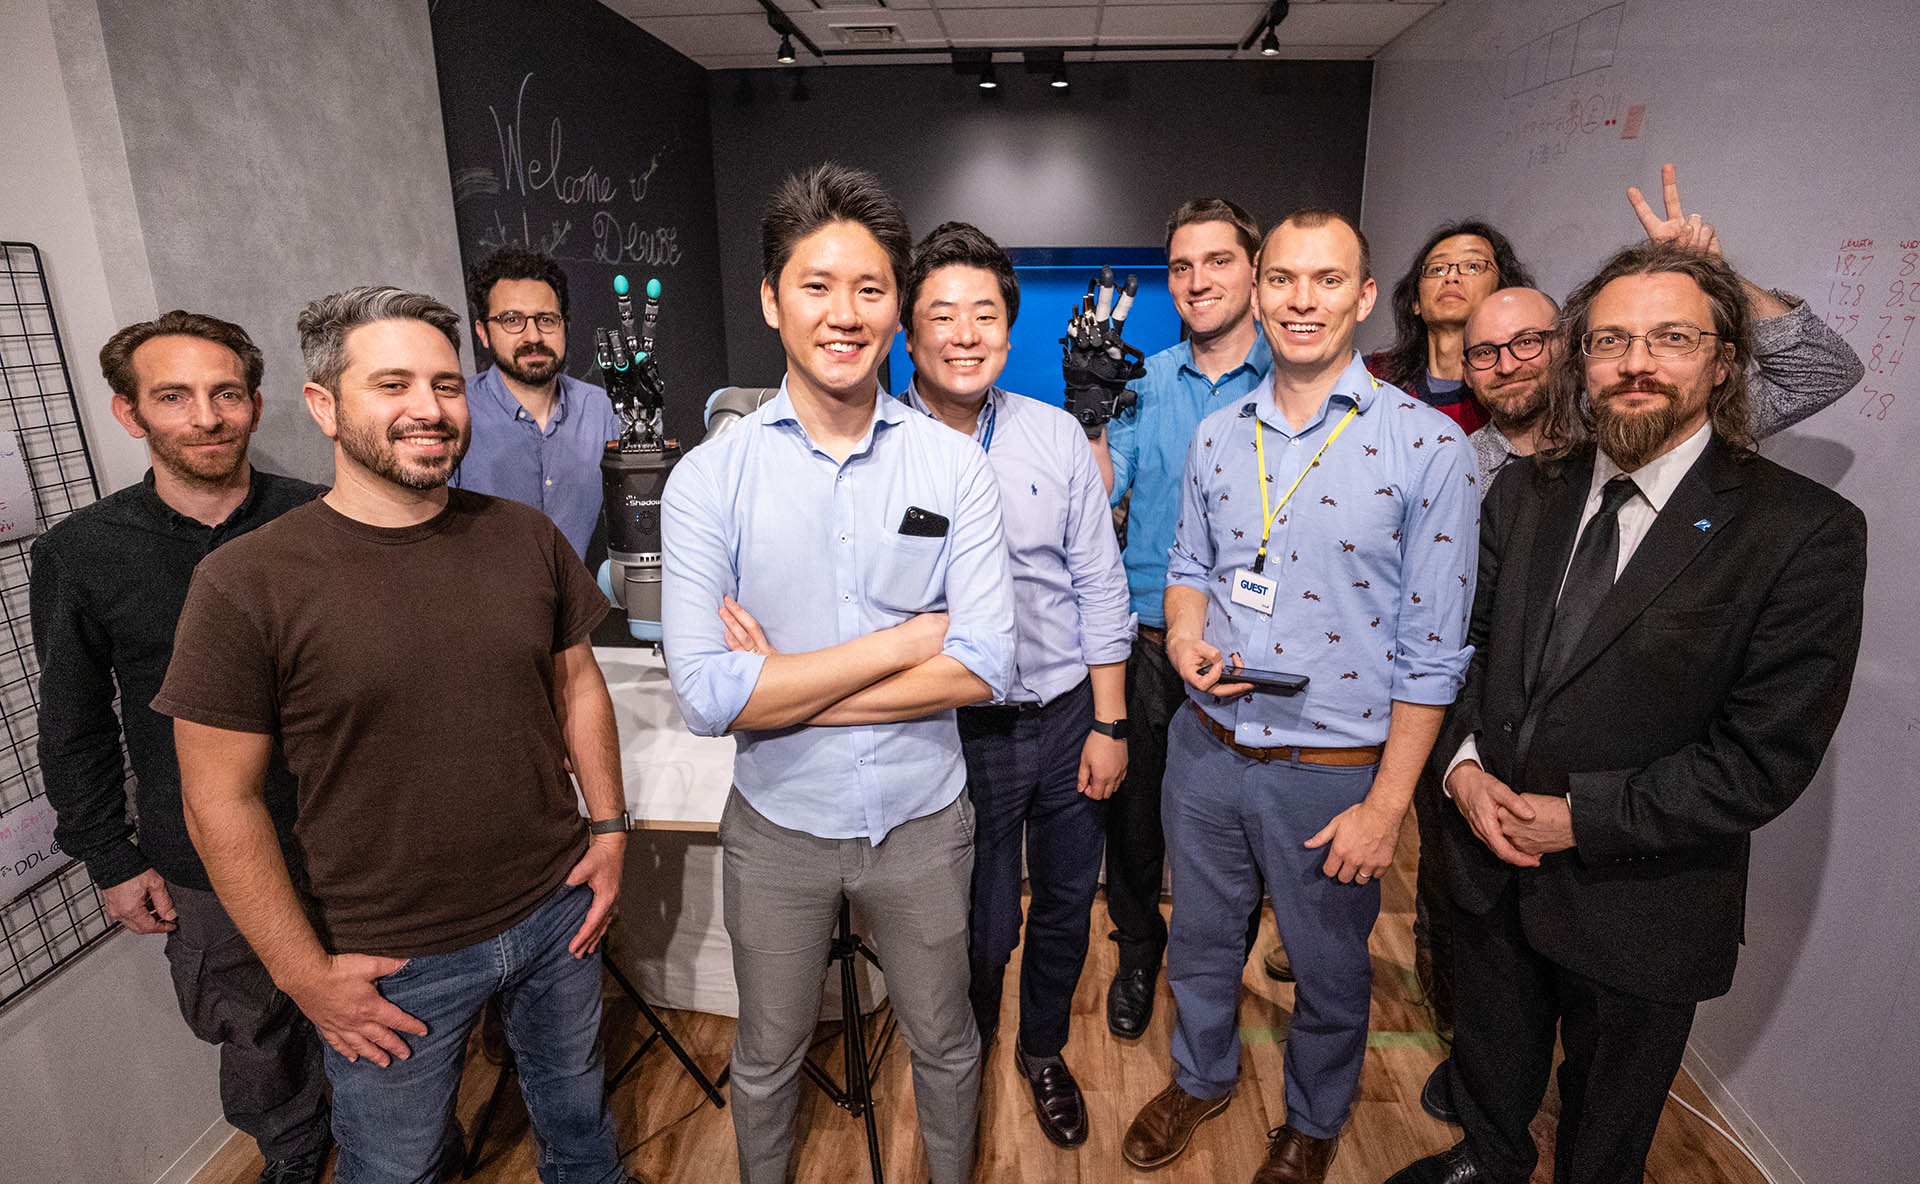 Representatives from HaptX, Syntouch, Shadow Robot Company, and ANA gathered in Tokyo in January 2019.